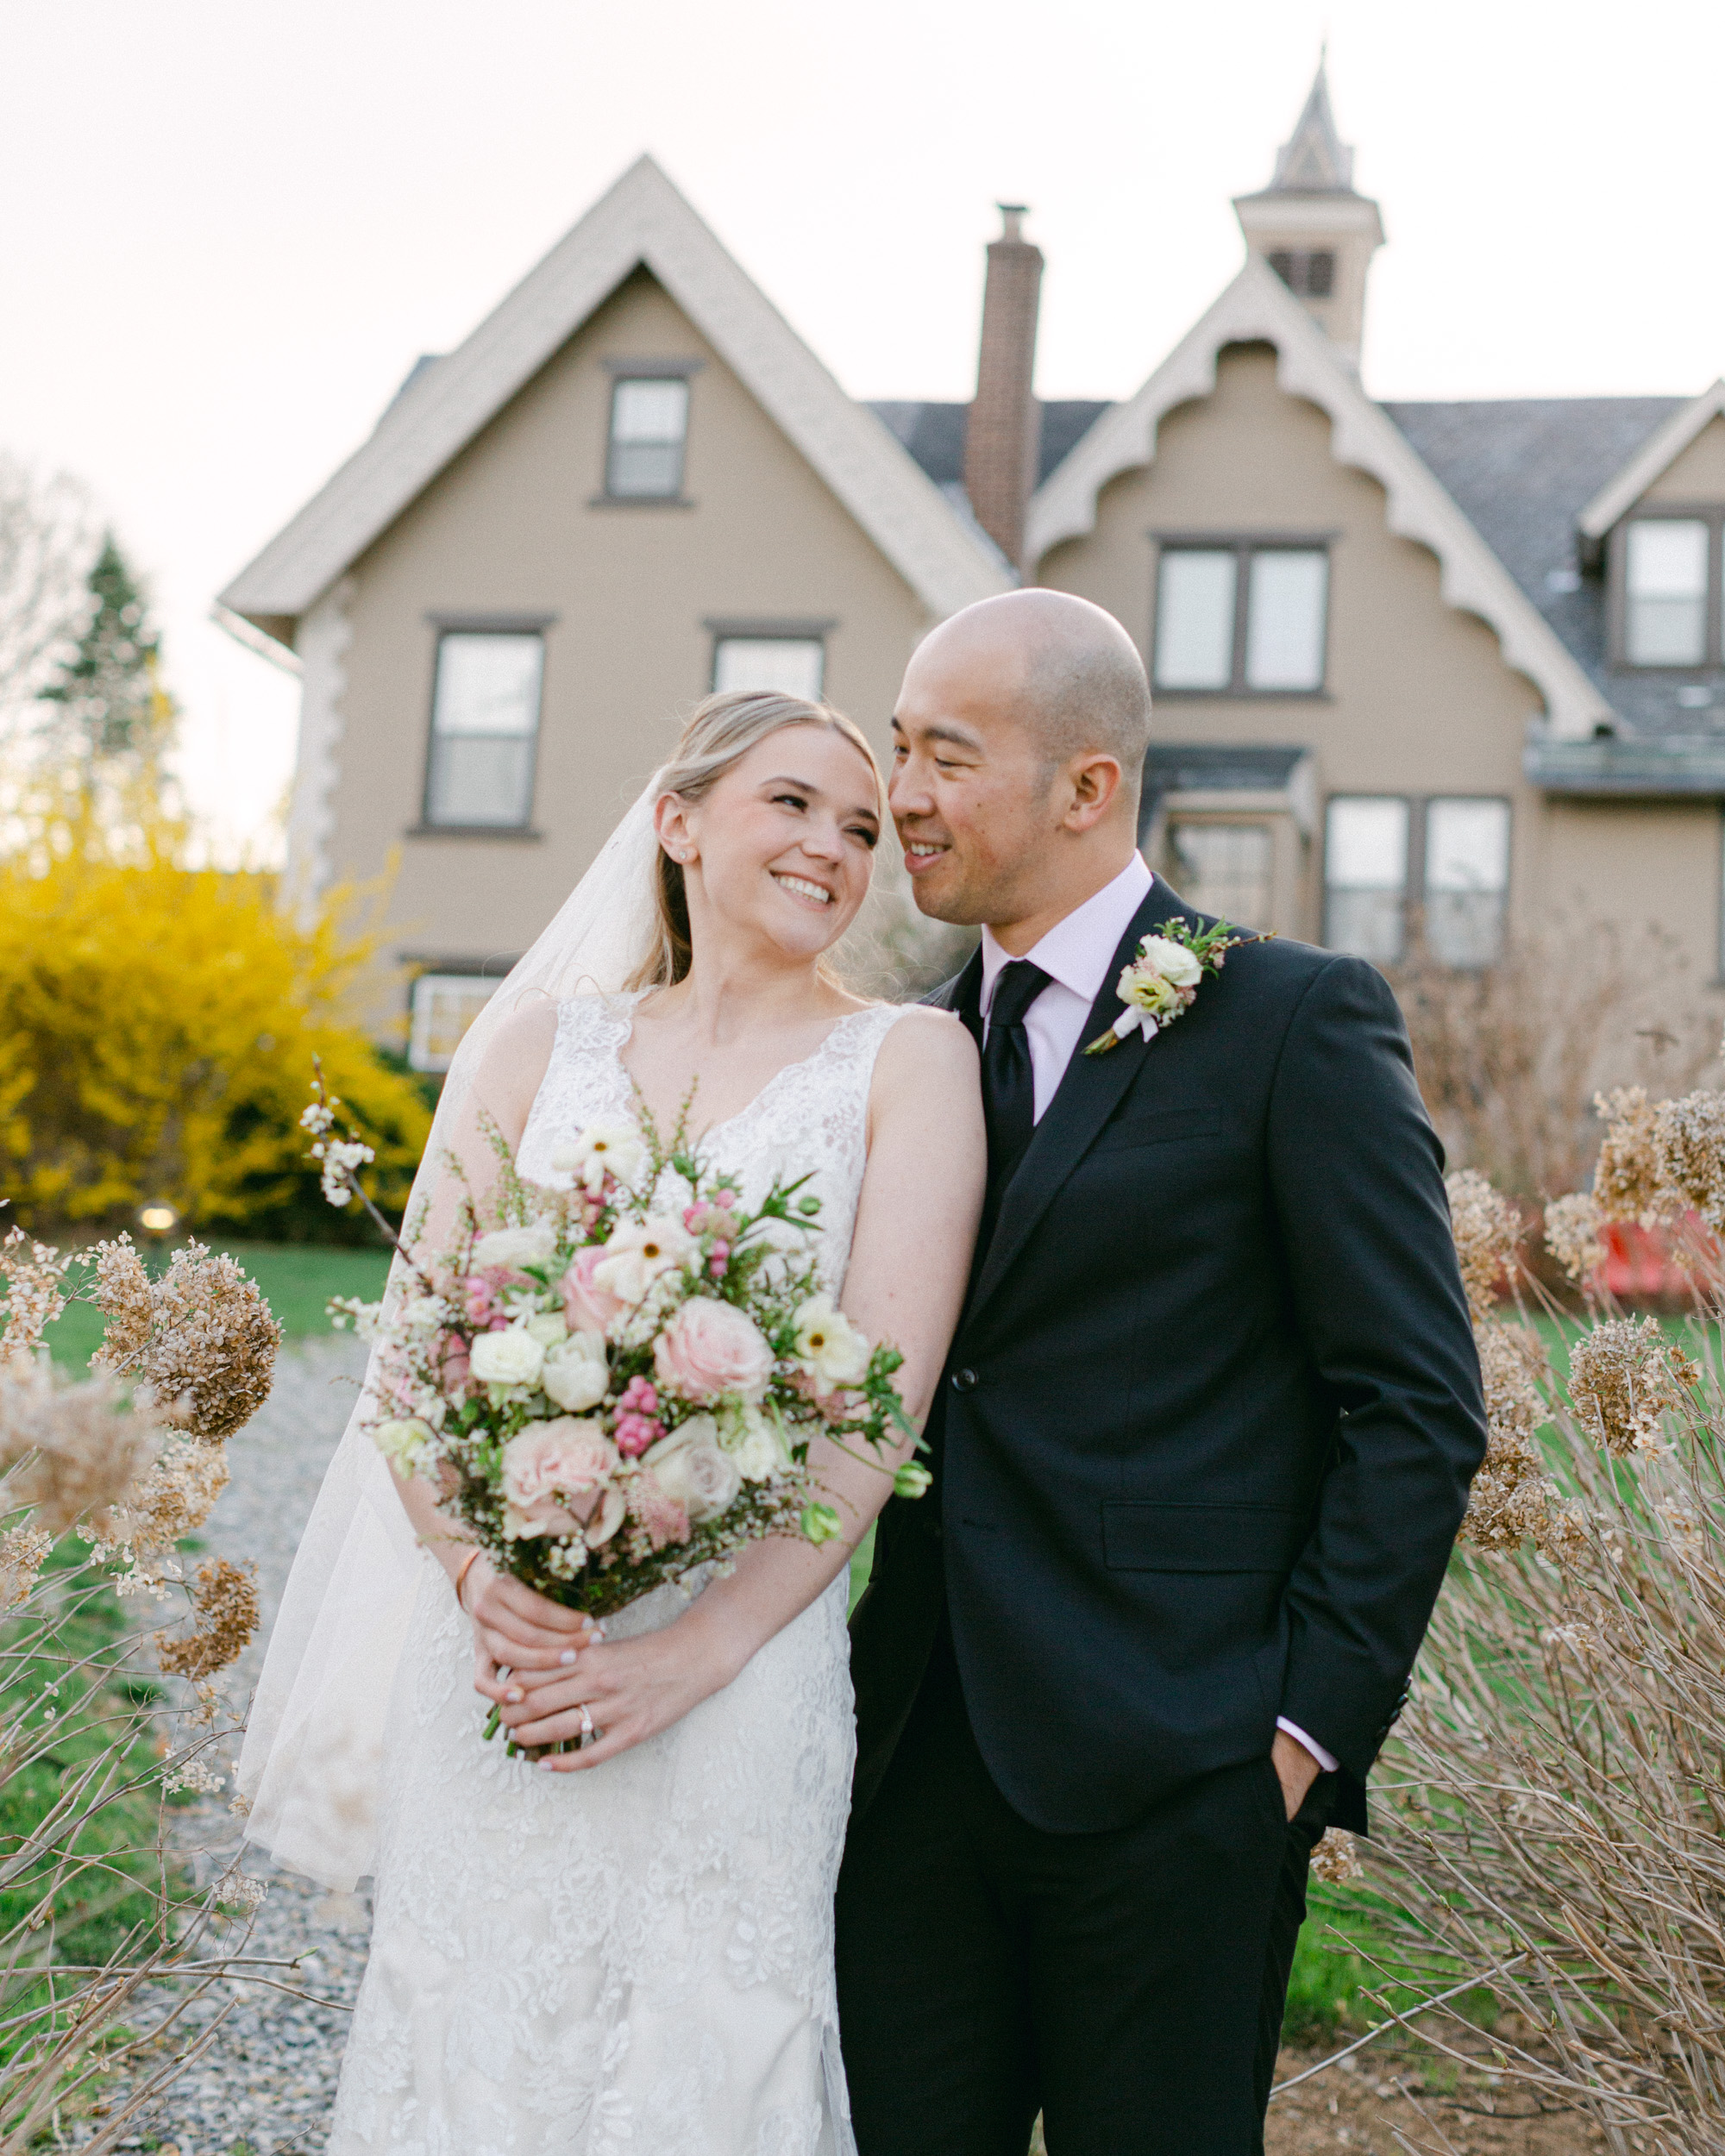 Elegant bride and groom with a luxurious spring bouquet in front of the carriage house at the Sayre Mansion in Bethlehem, PA by Laura Billingham Photography